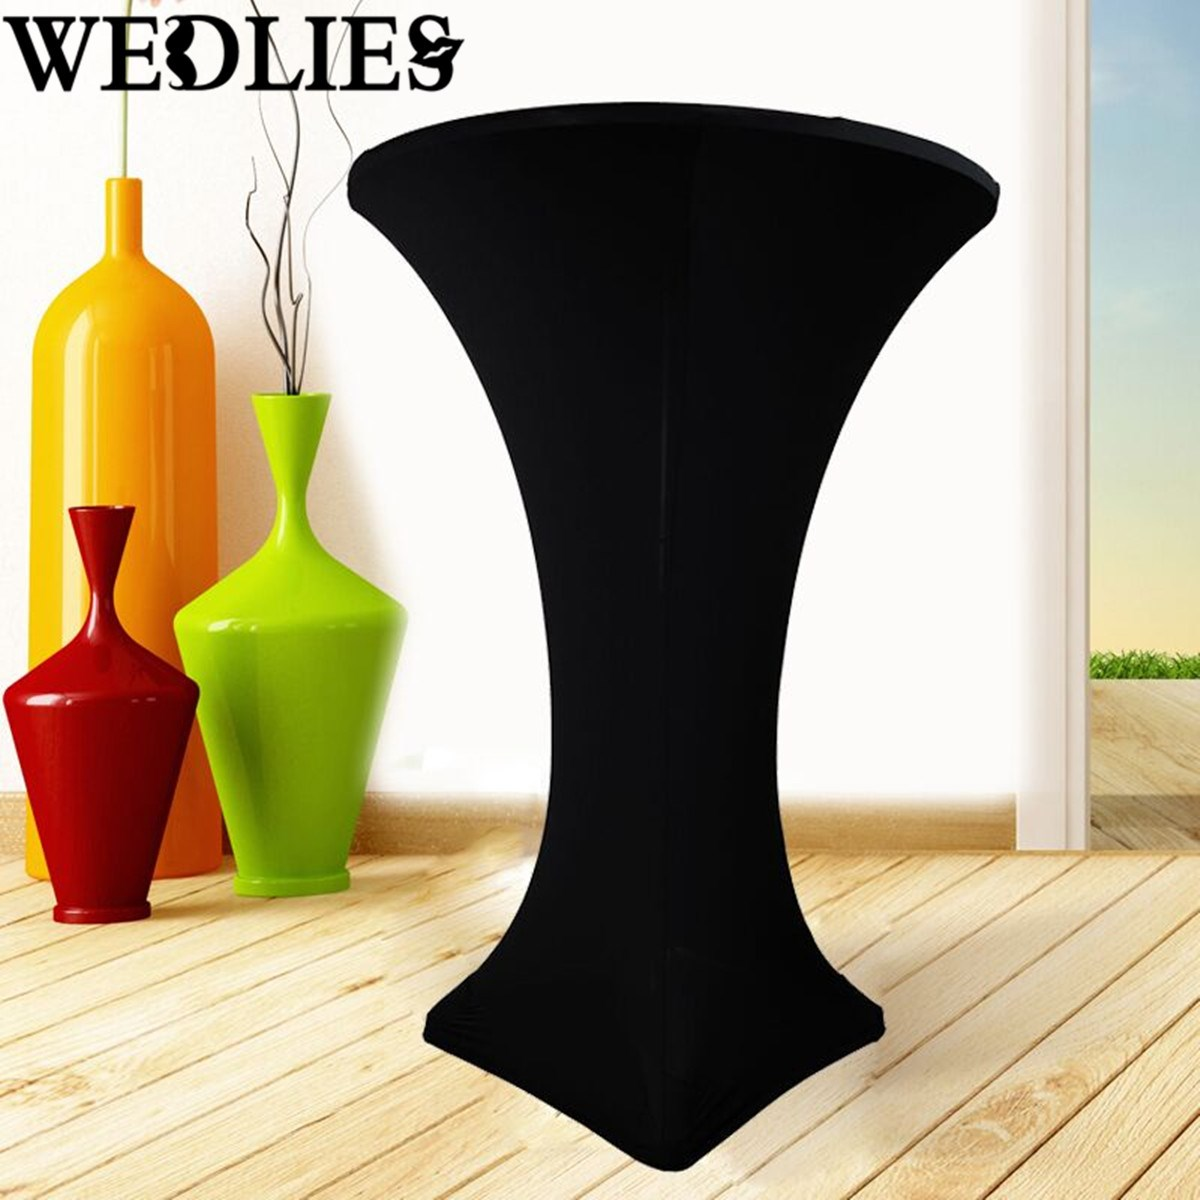 5Pcs/Set Black Spandex Stretch Table Cloth Fitted Cocktail High Bar Wedding Tablecloth Table Cover Party Events Decor Textiles(China (Mainland))